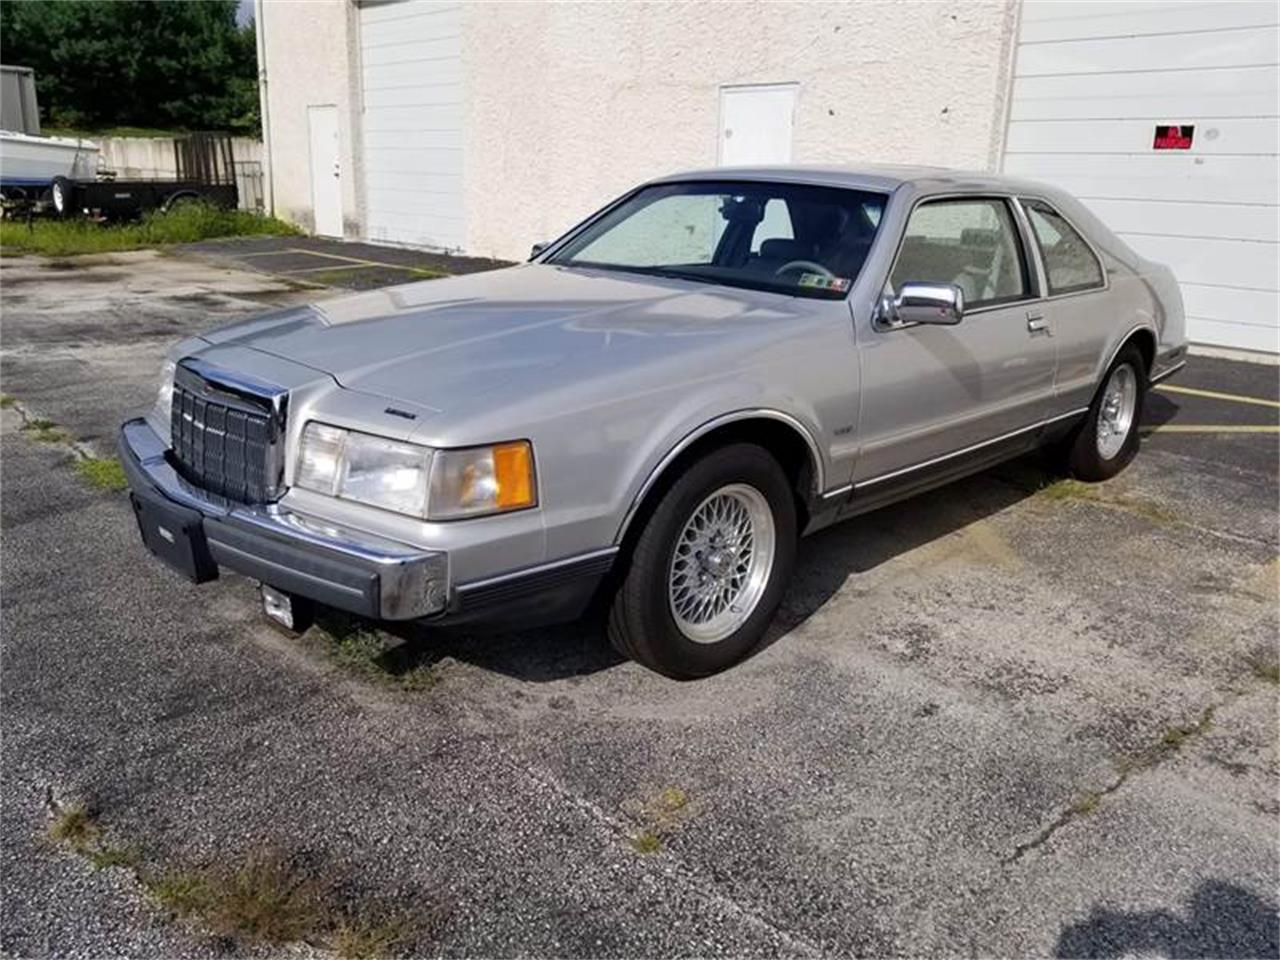 1990 Lincoln Mark VII for sale in Clarksburg, MD – photo 2